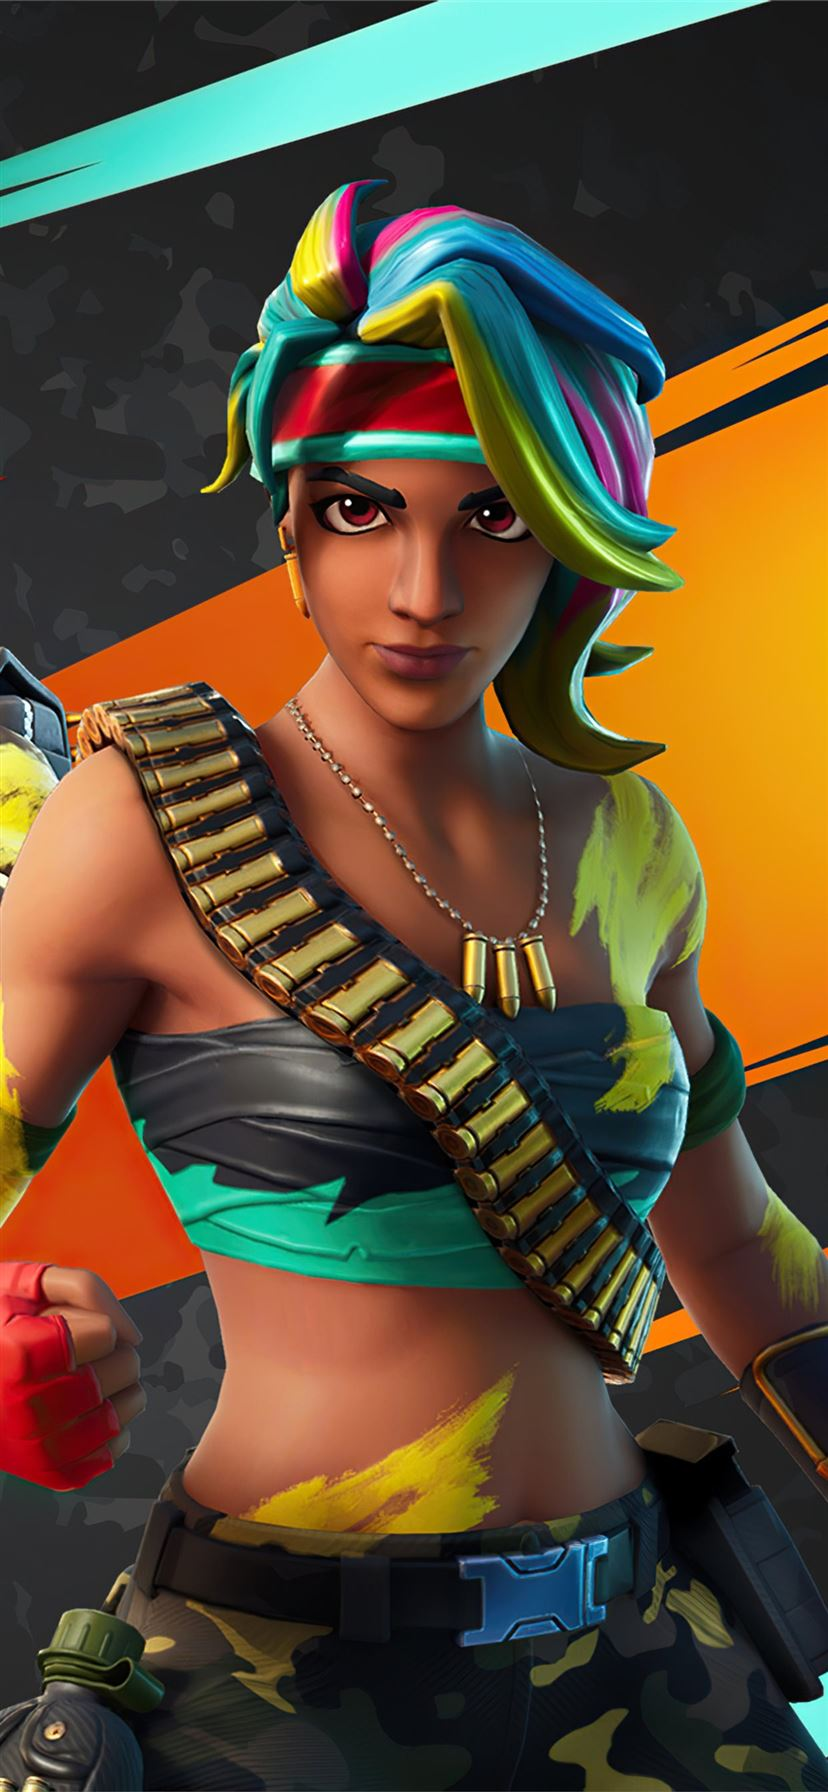 Fortnite Games Iphone 11 Wallpapers Free Download